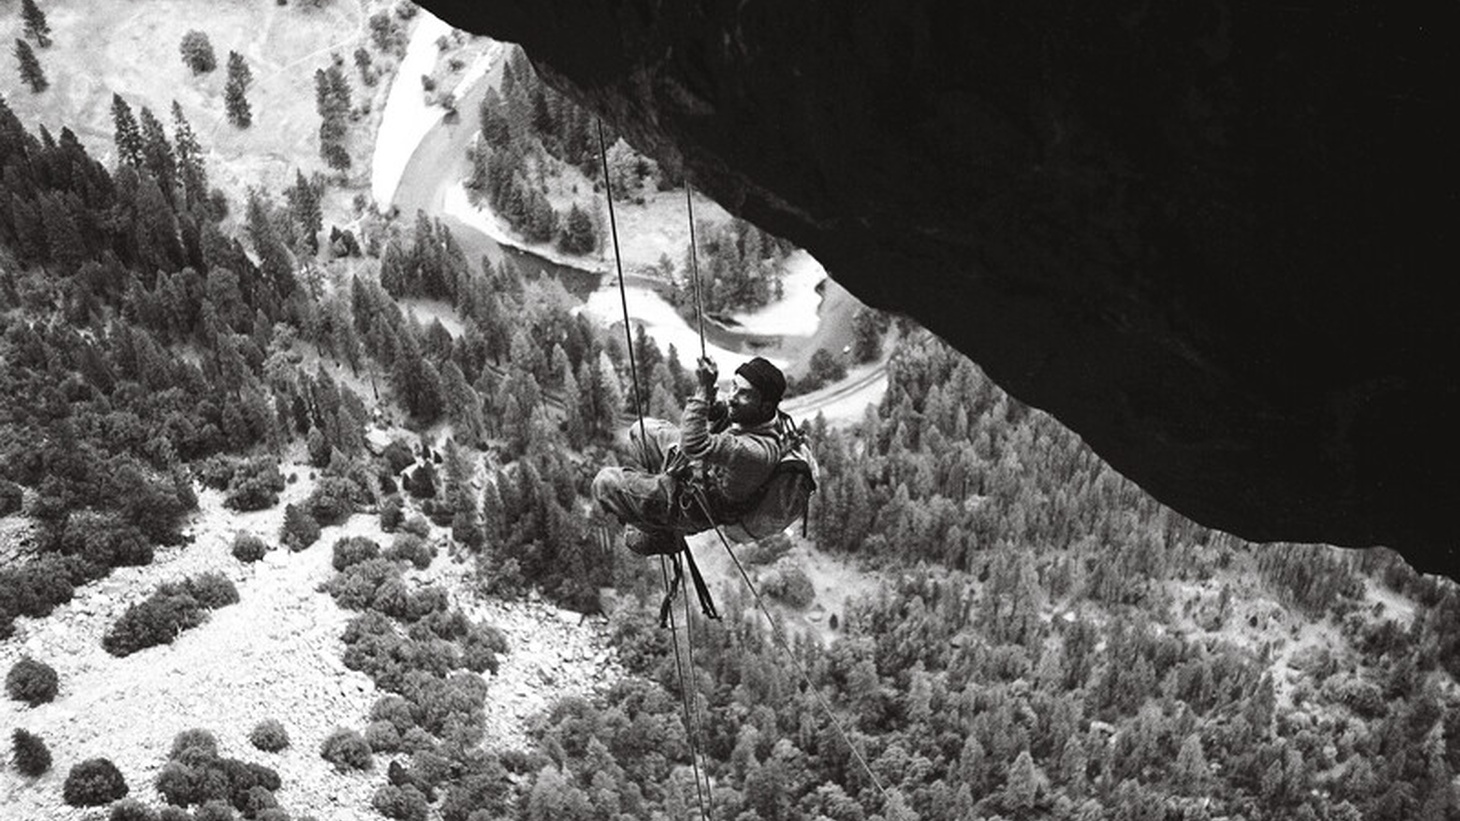 Yvon Chouinard graces the cover of his new book. He's shown on the cover at the Black Dihedral, North America Wall, El Capitan, Yosemite.